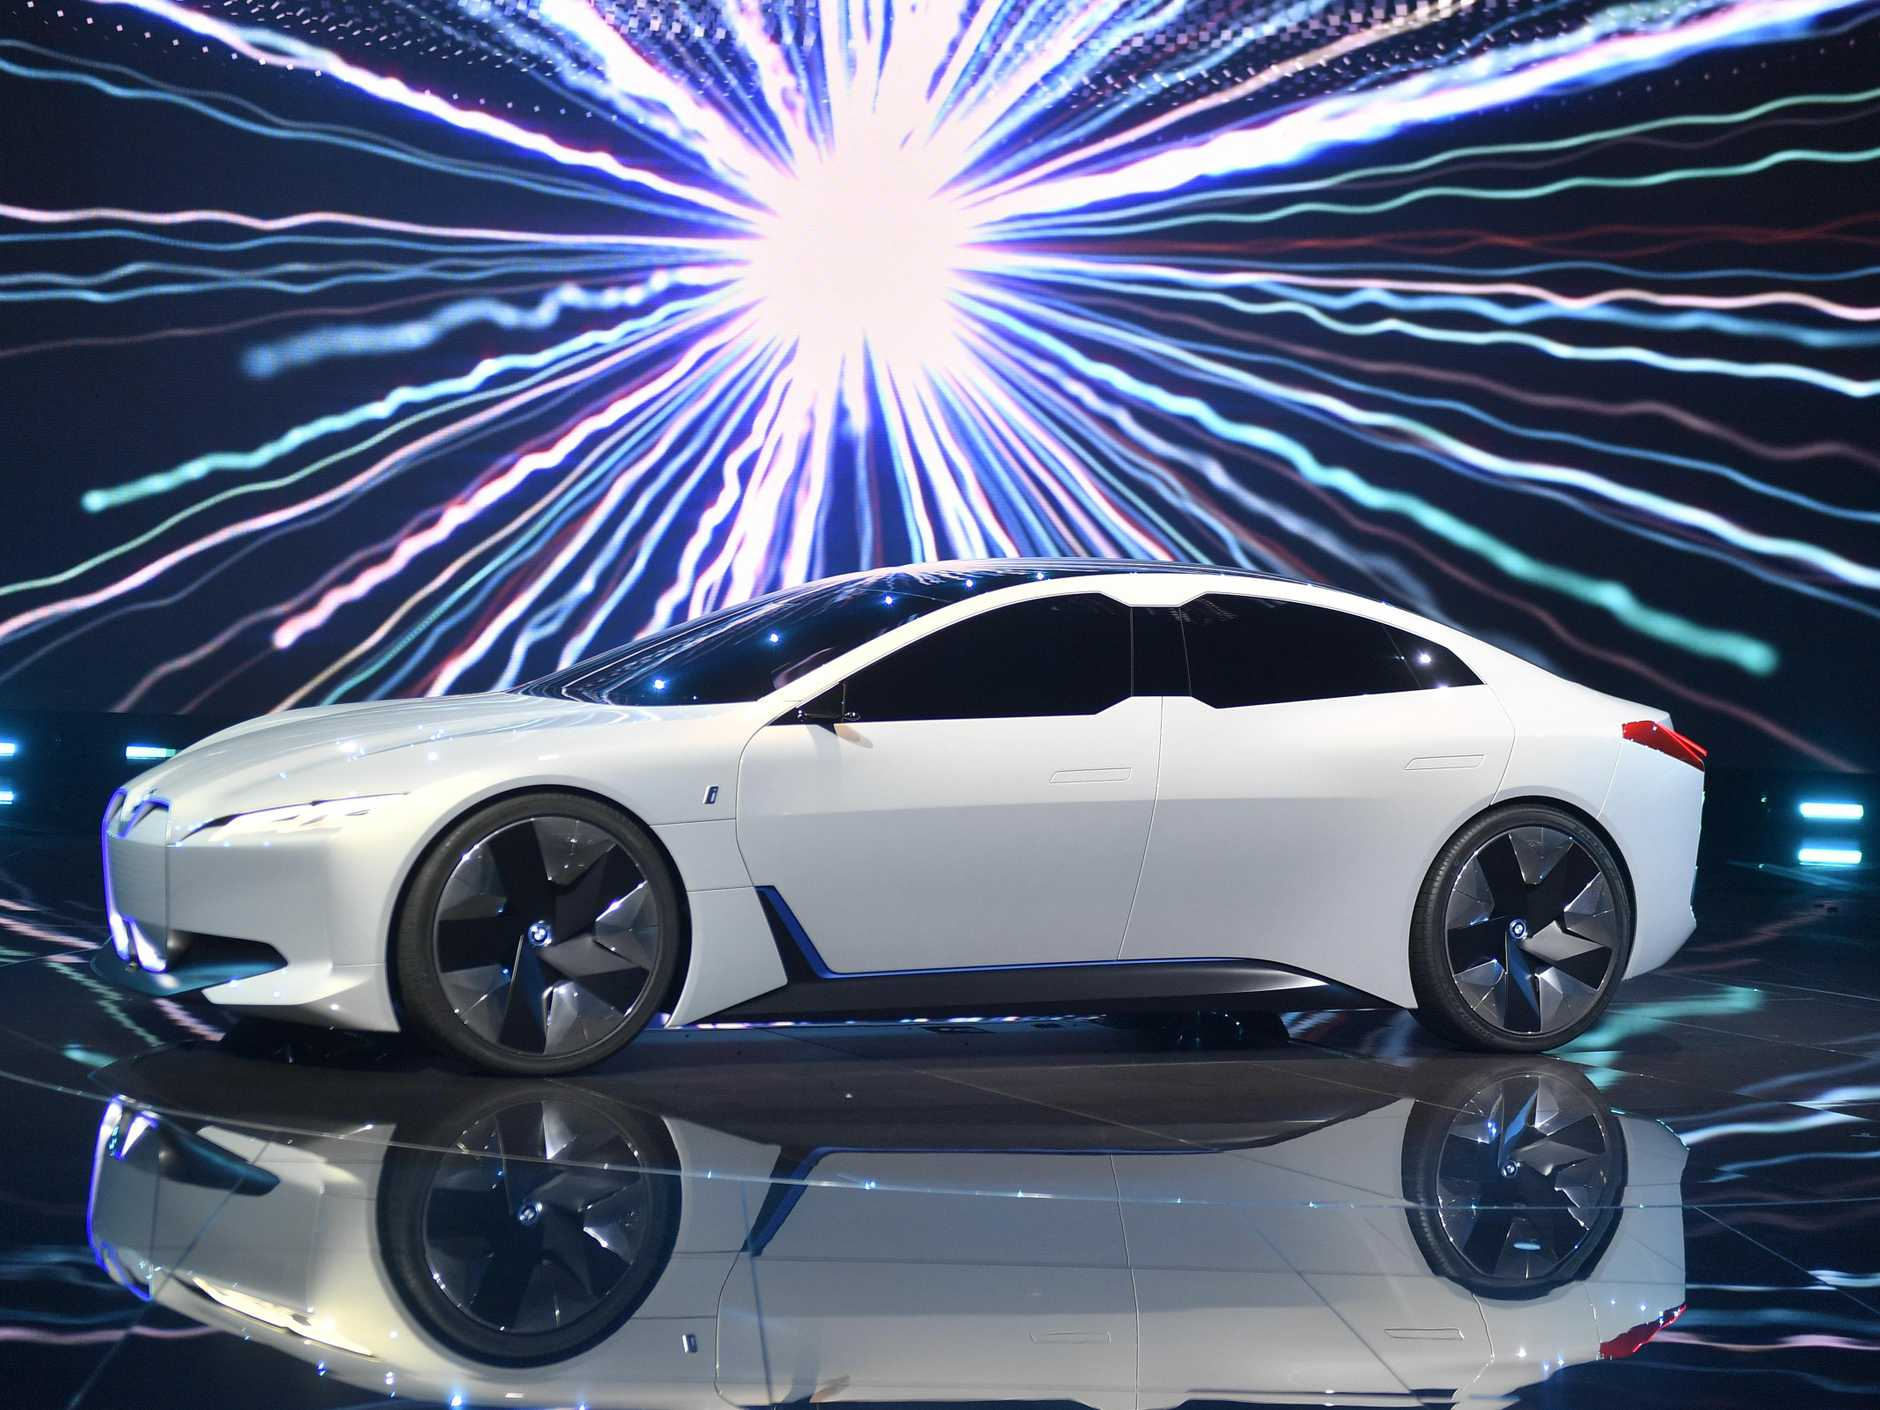 BMW i vision dynamics is presented at a BMW event during the first media day of the International Frankfurt Motor Show IAA in Frankfurt, Germany, Tuesday, Sept. 12, 2017, which runs through Sept. 24, 2017. (AP Photo/Martin Meissner)